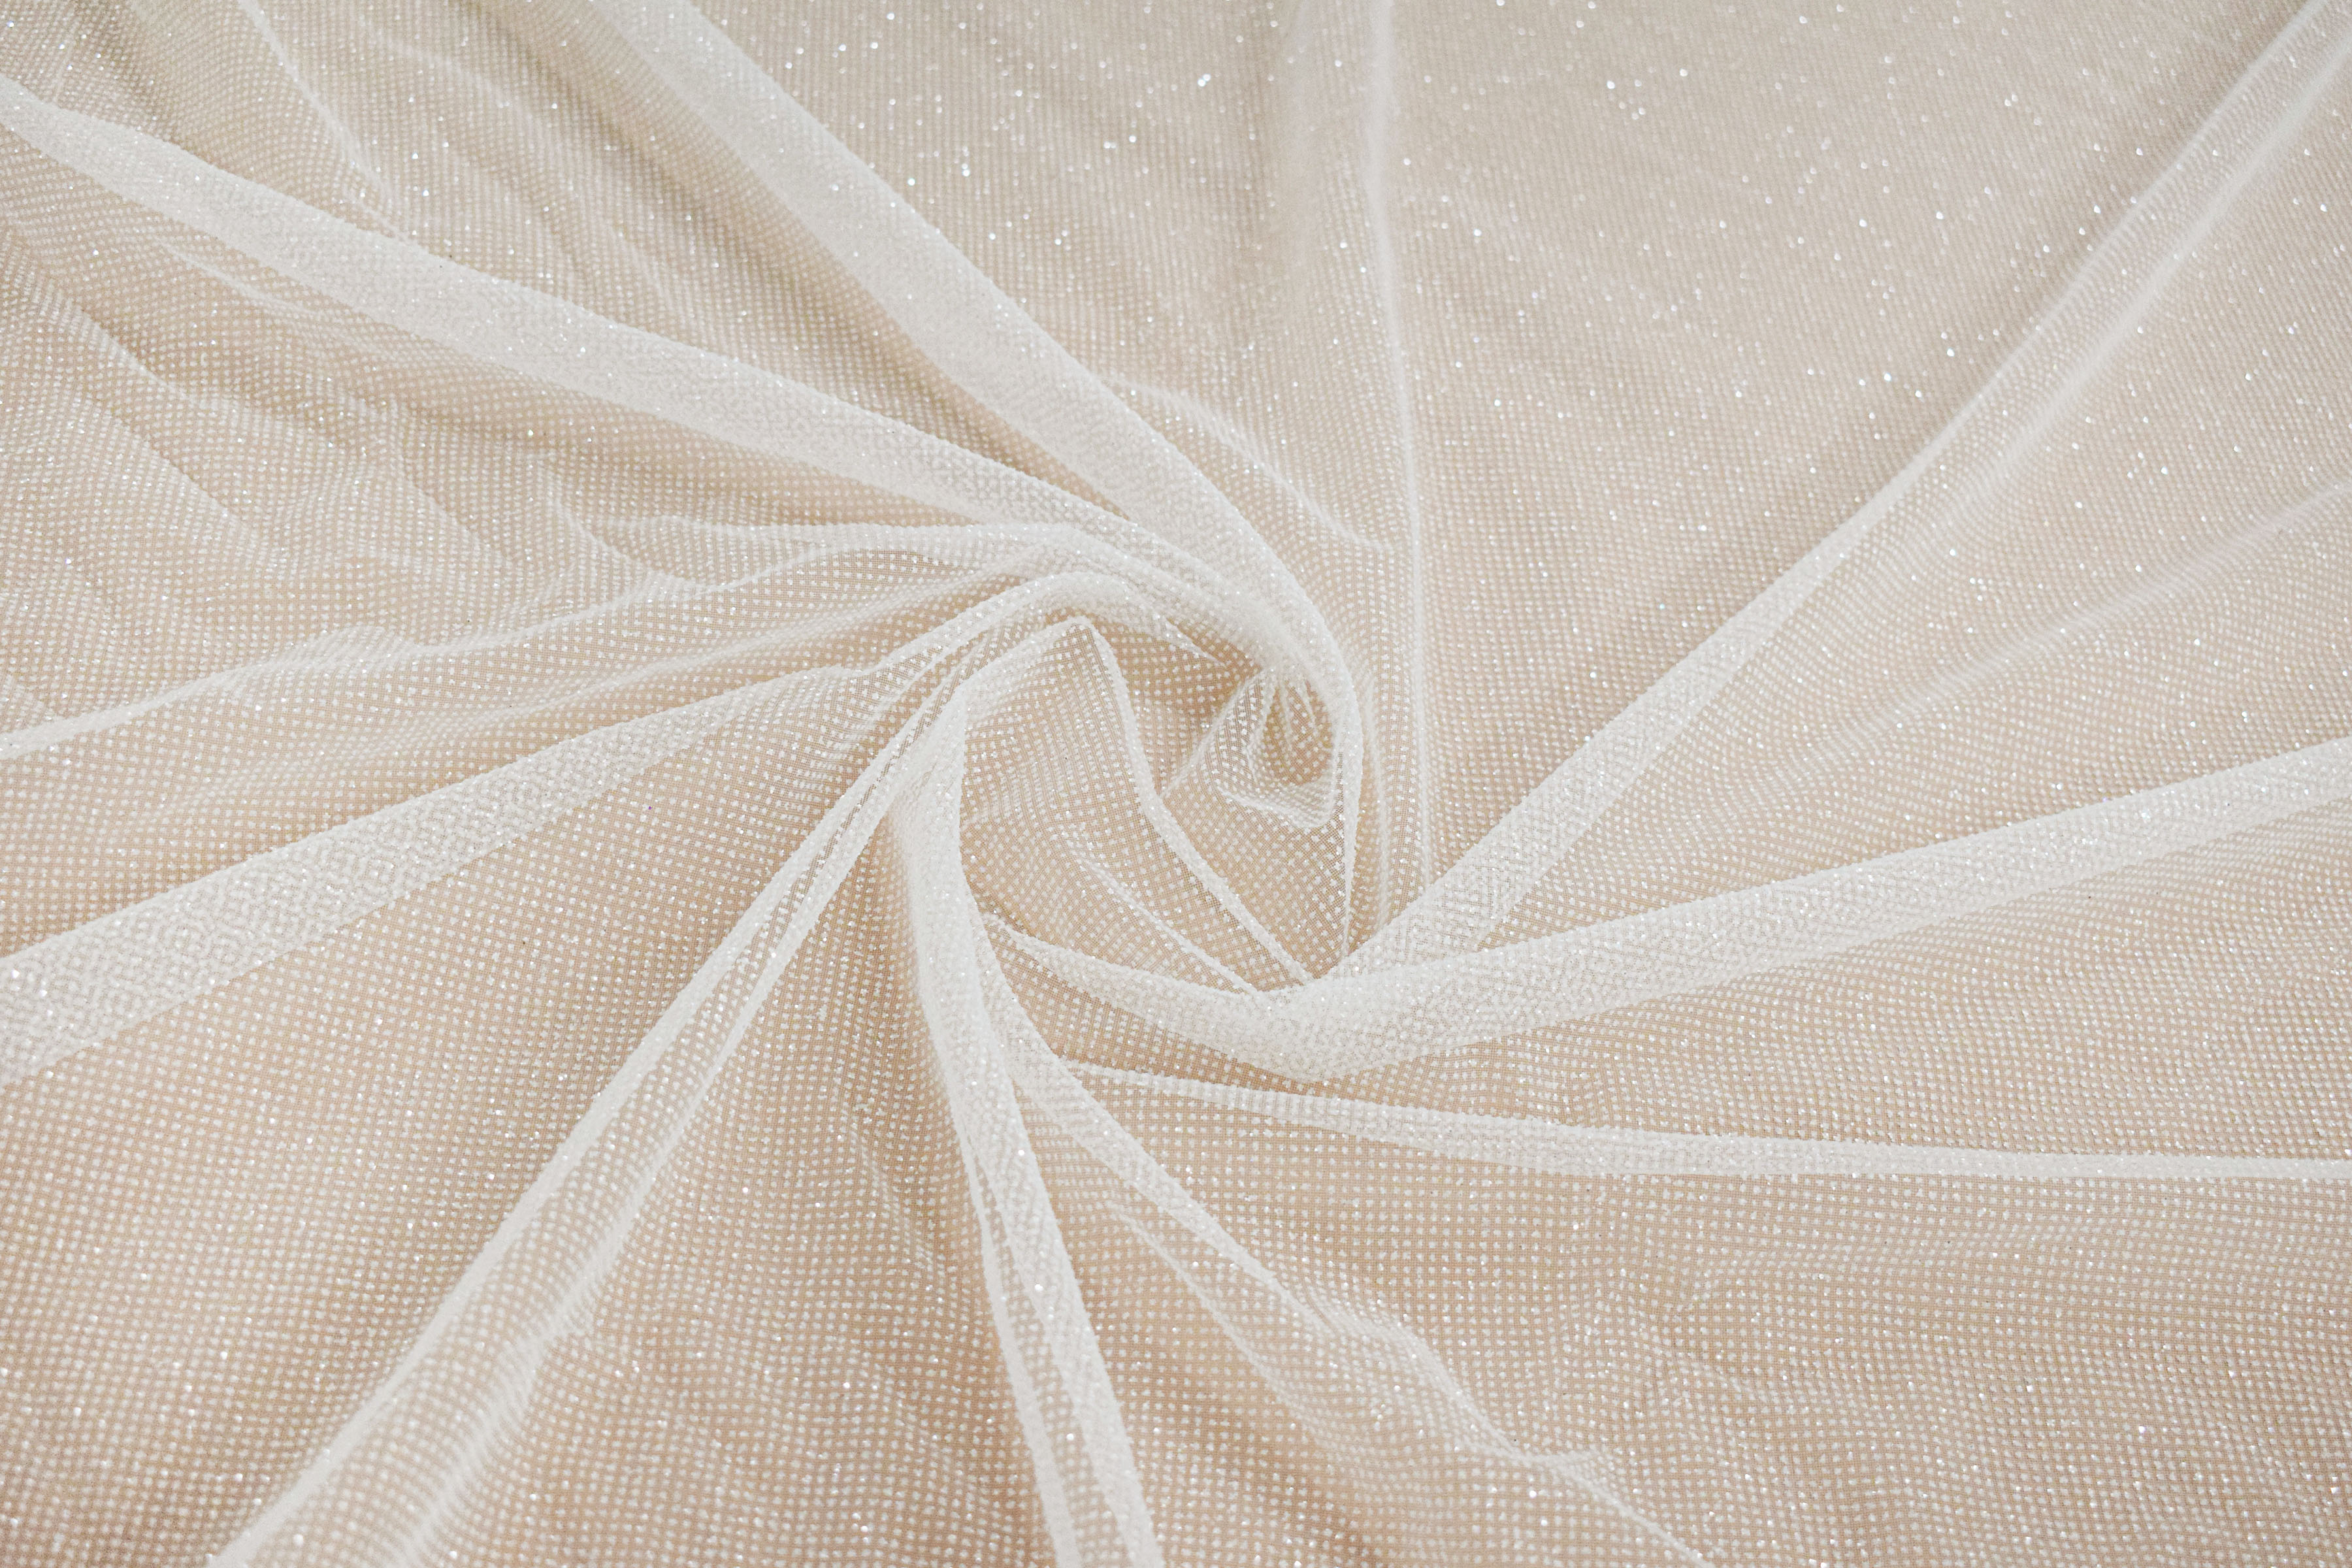 Fabric mesh: With glitter «AKN-323»